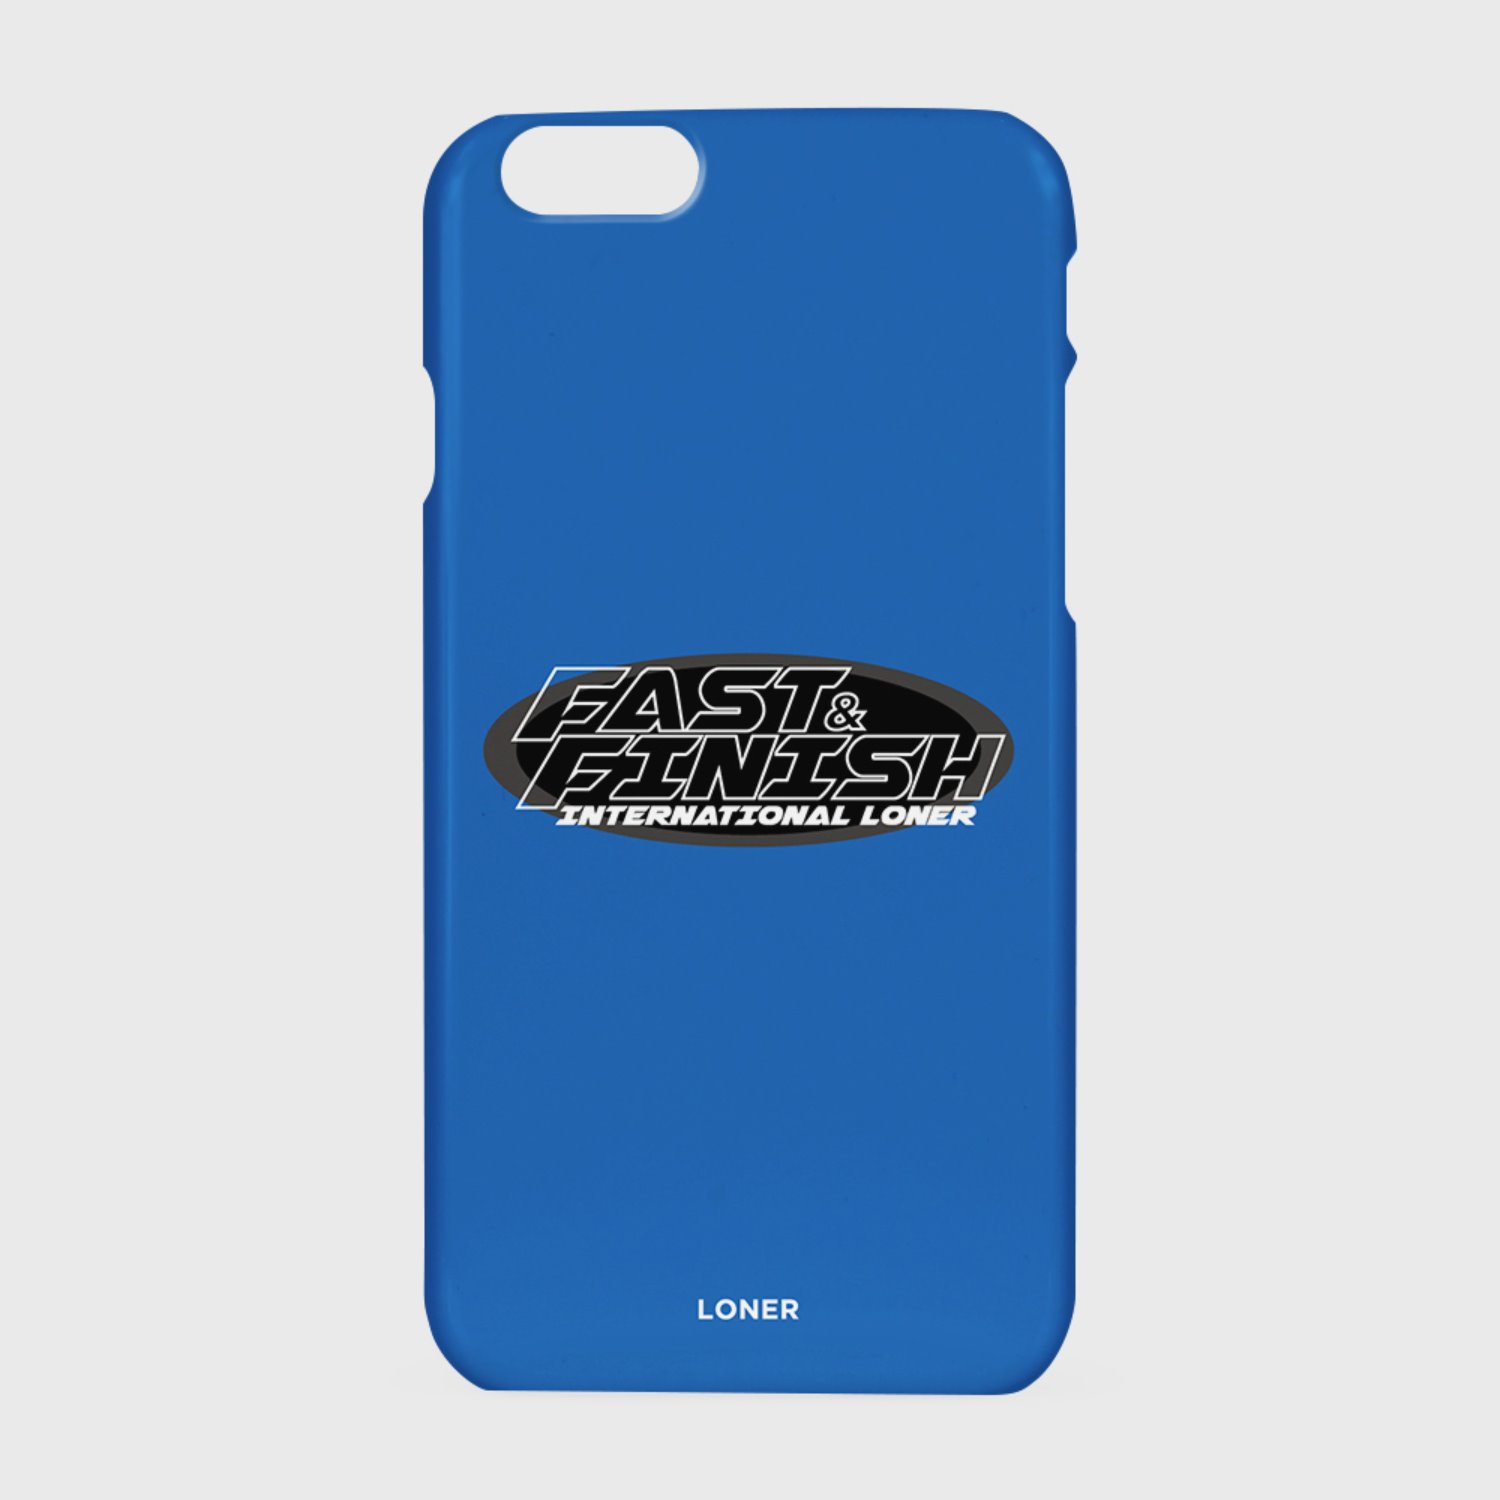 circle fast and finish case-blue (기간한정 09.11 - 09.17)